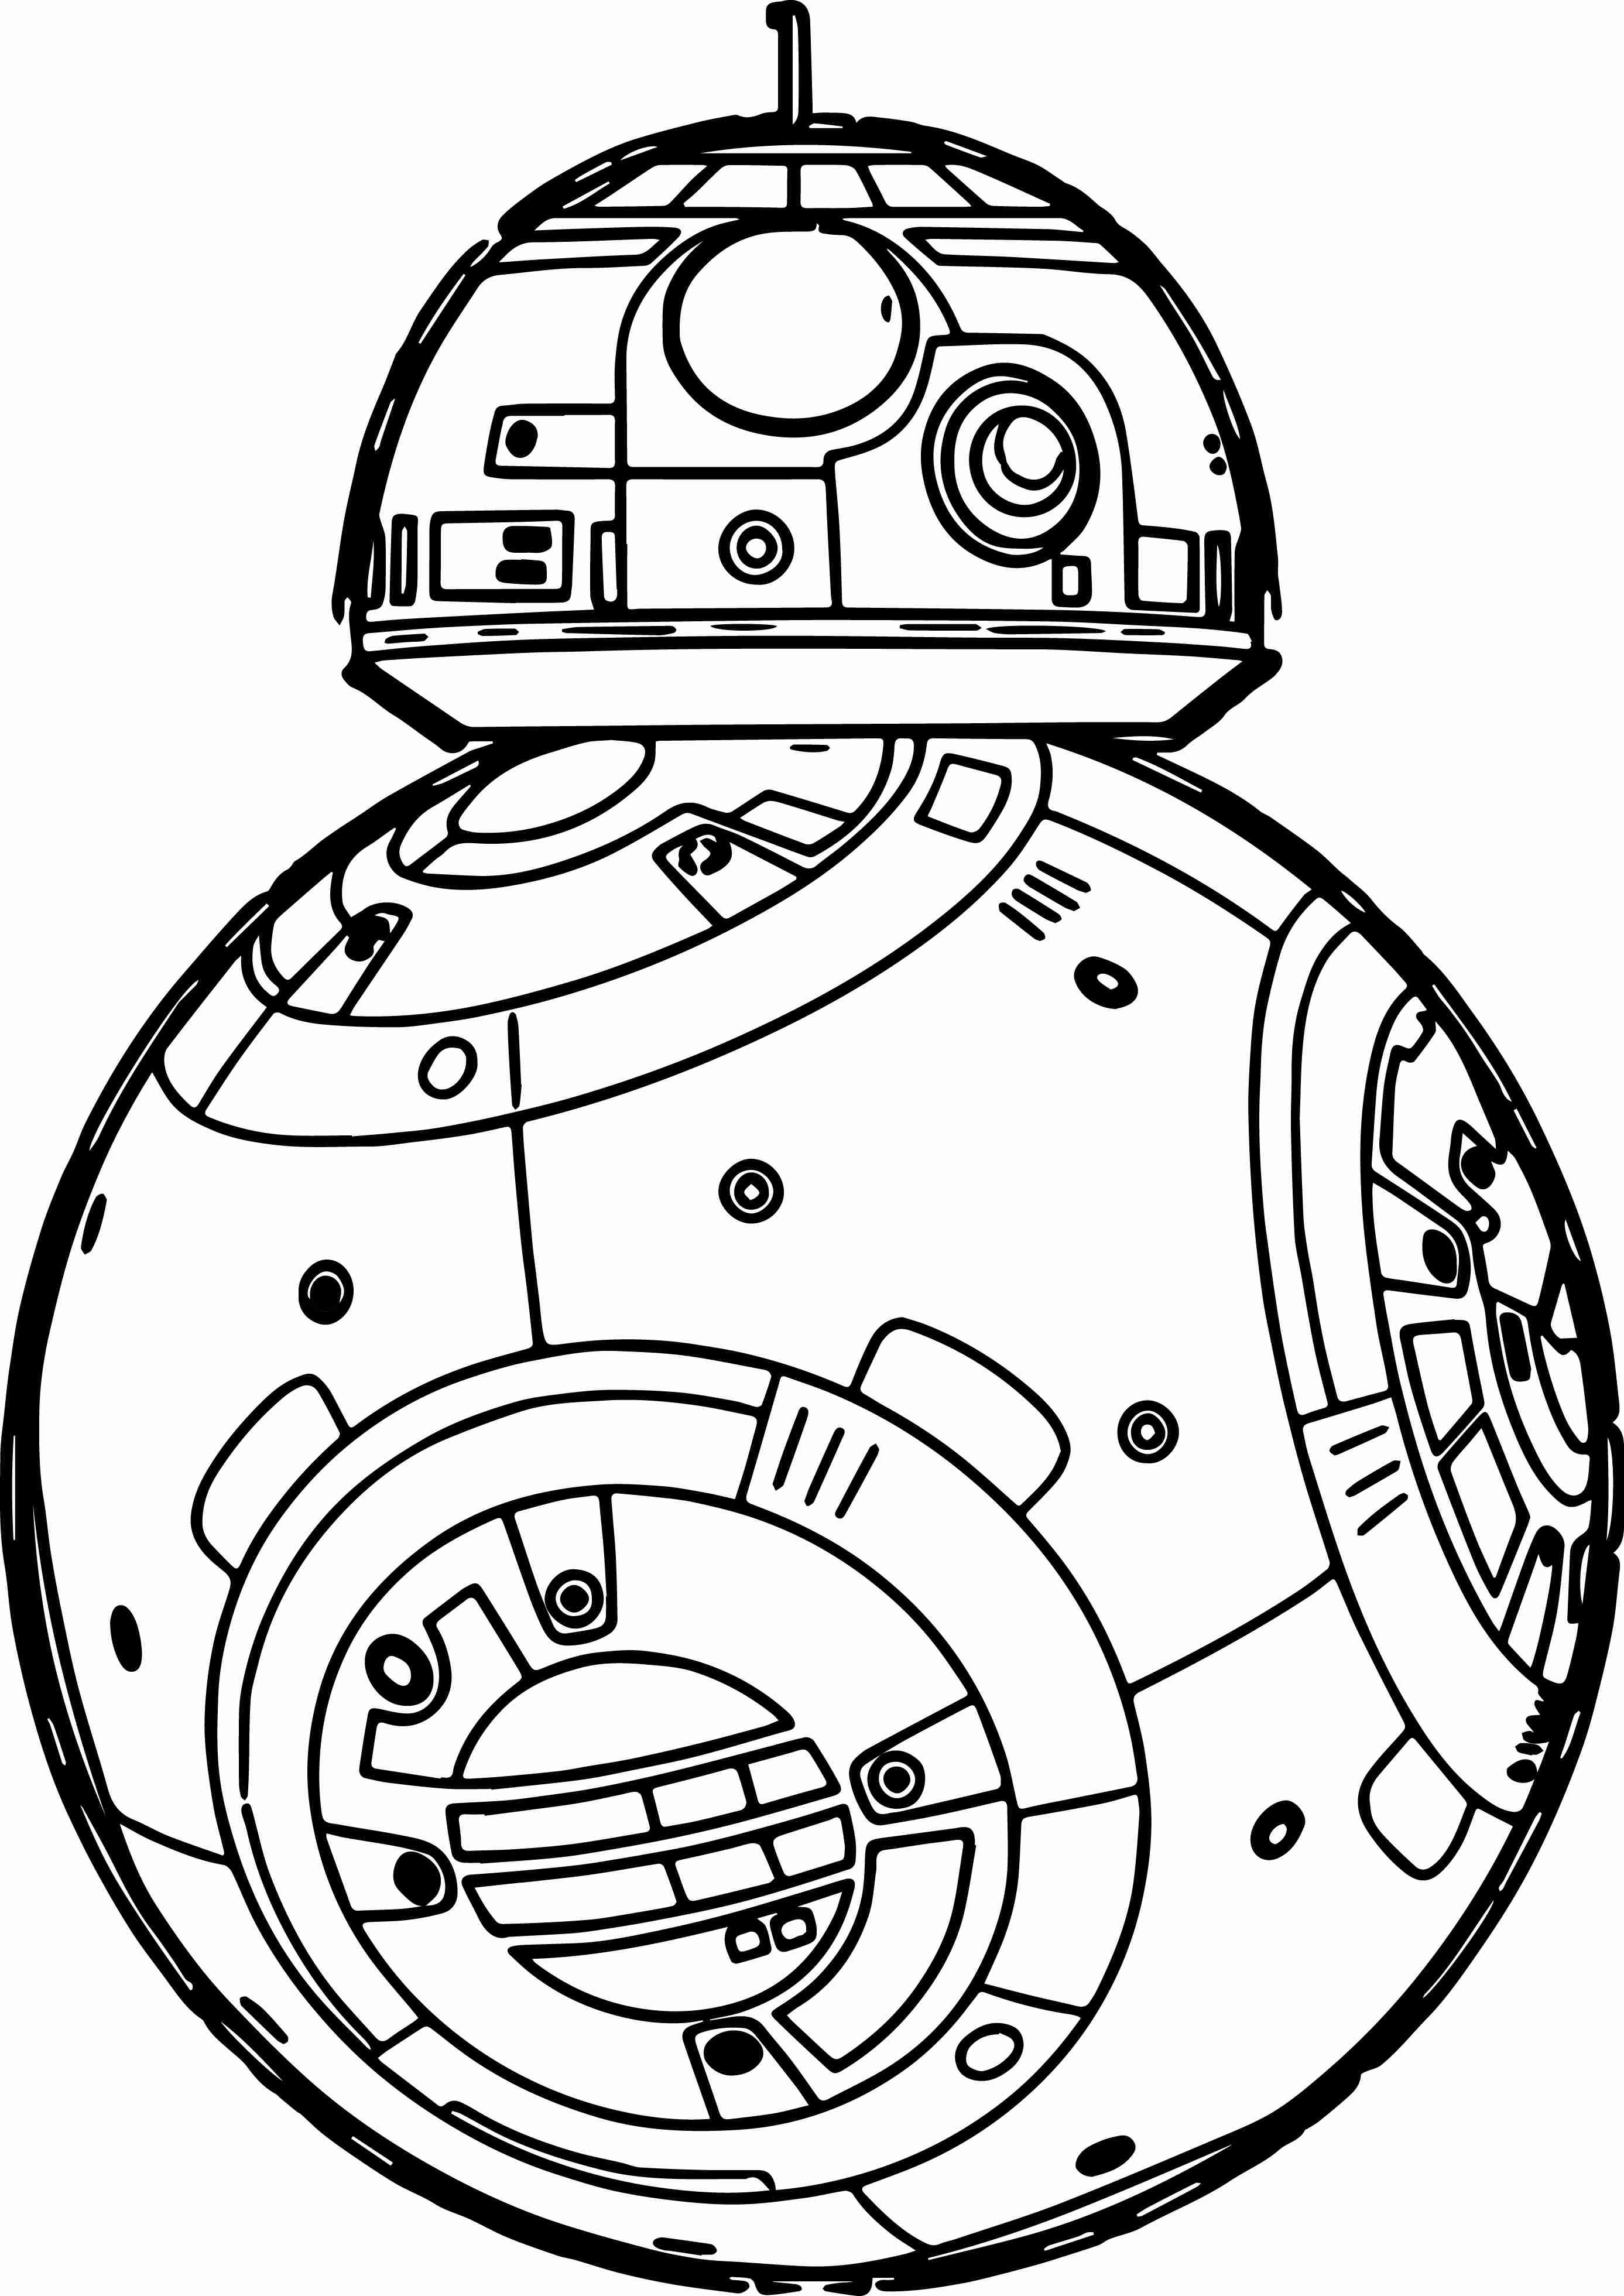 star wars coloring pages printable star wars to print star wars kids coloring pages coloring printable pages wars star